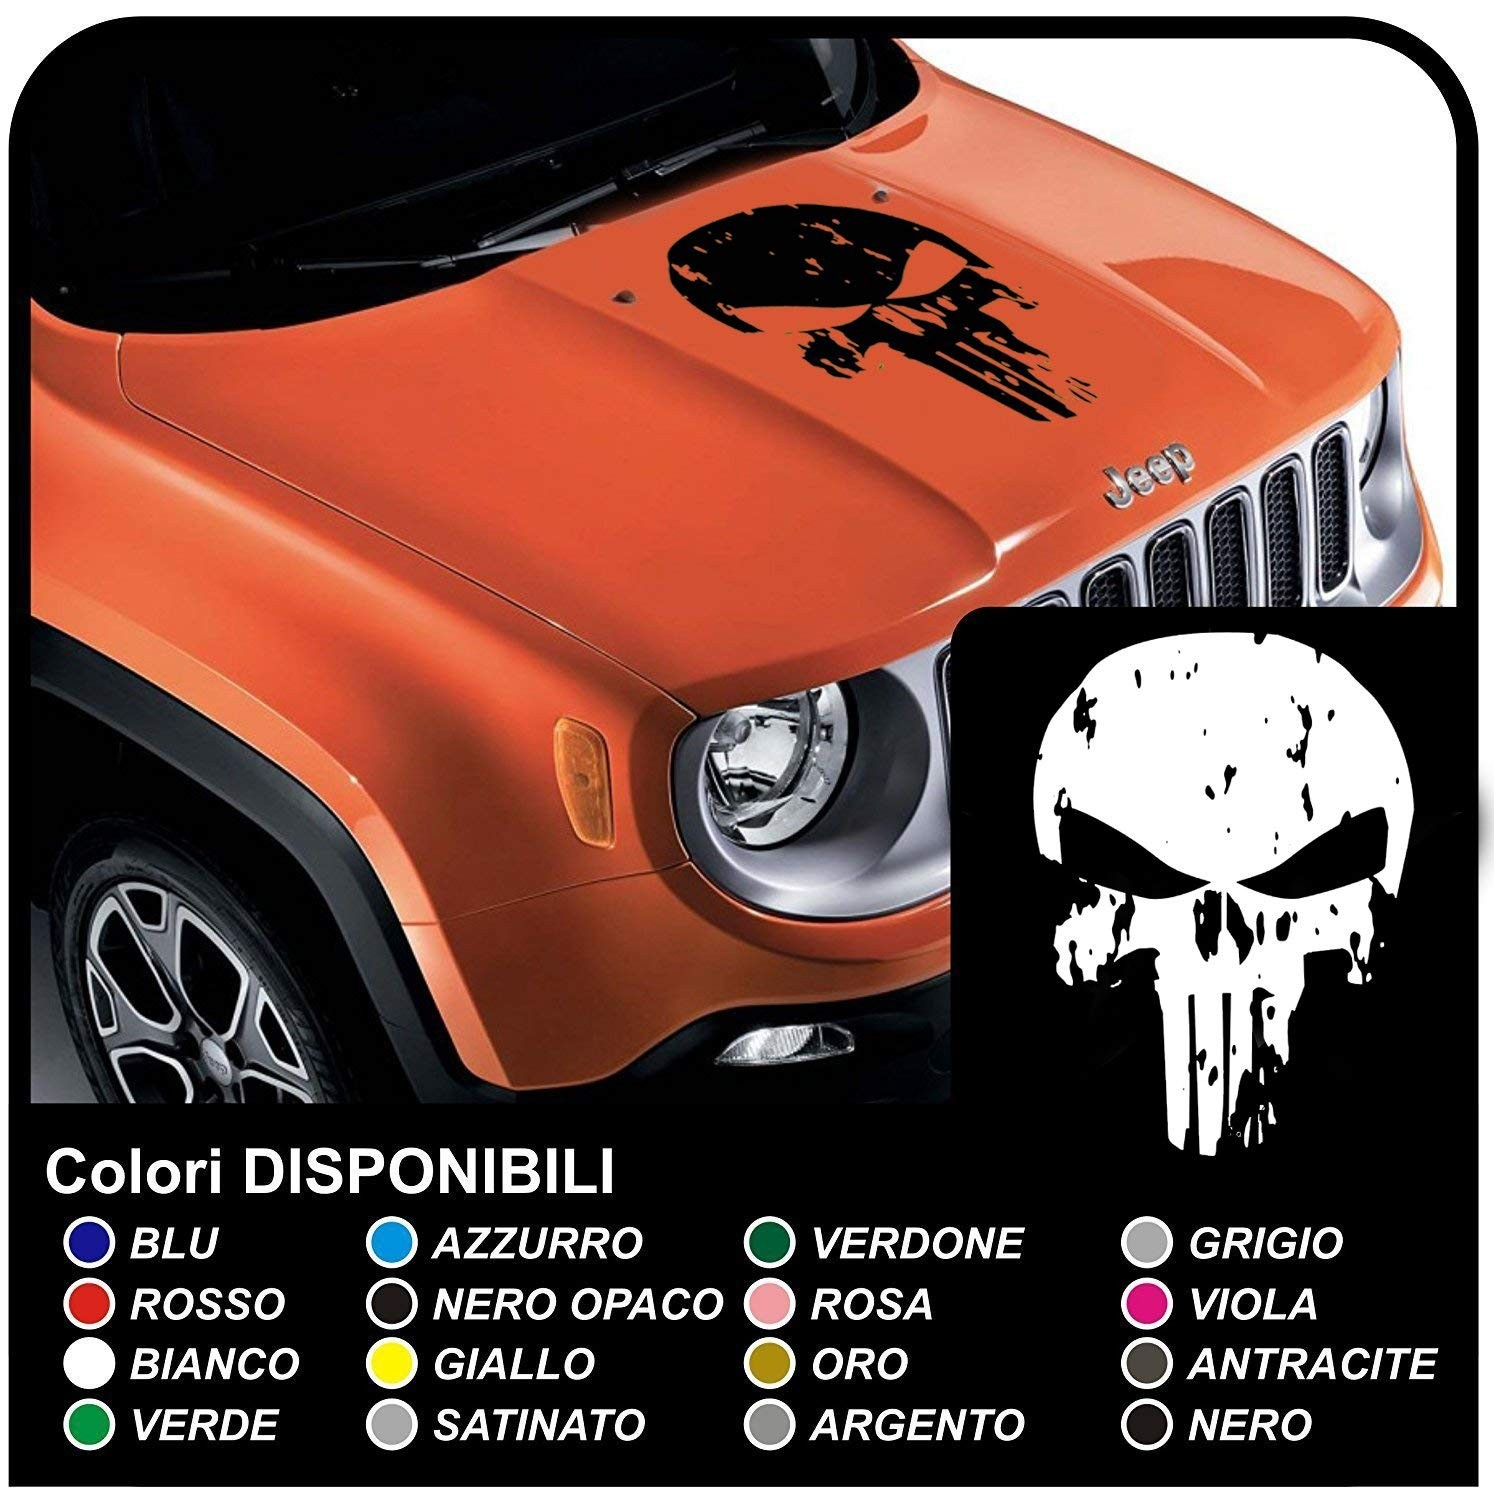 Sticker for bonnet jeep renegade and other off road skull worn effect skull punisher distressed suv 4x4 jpg